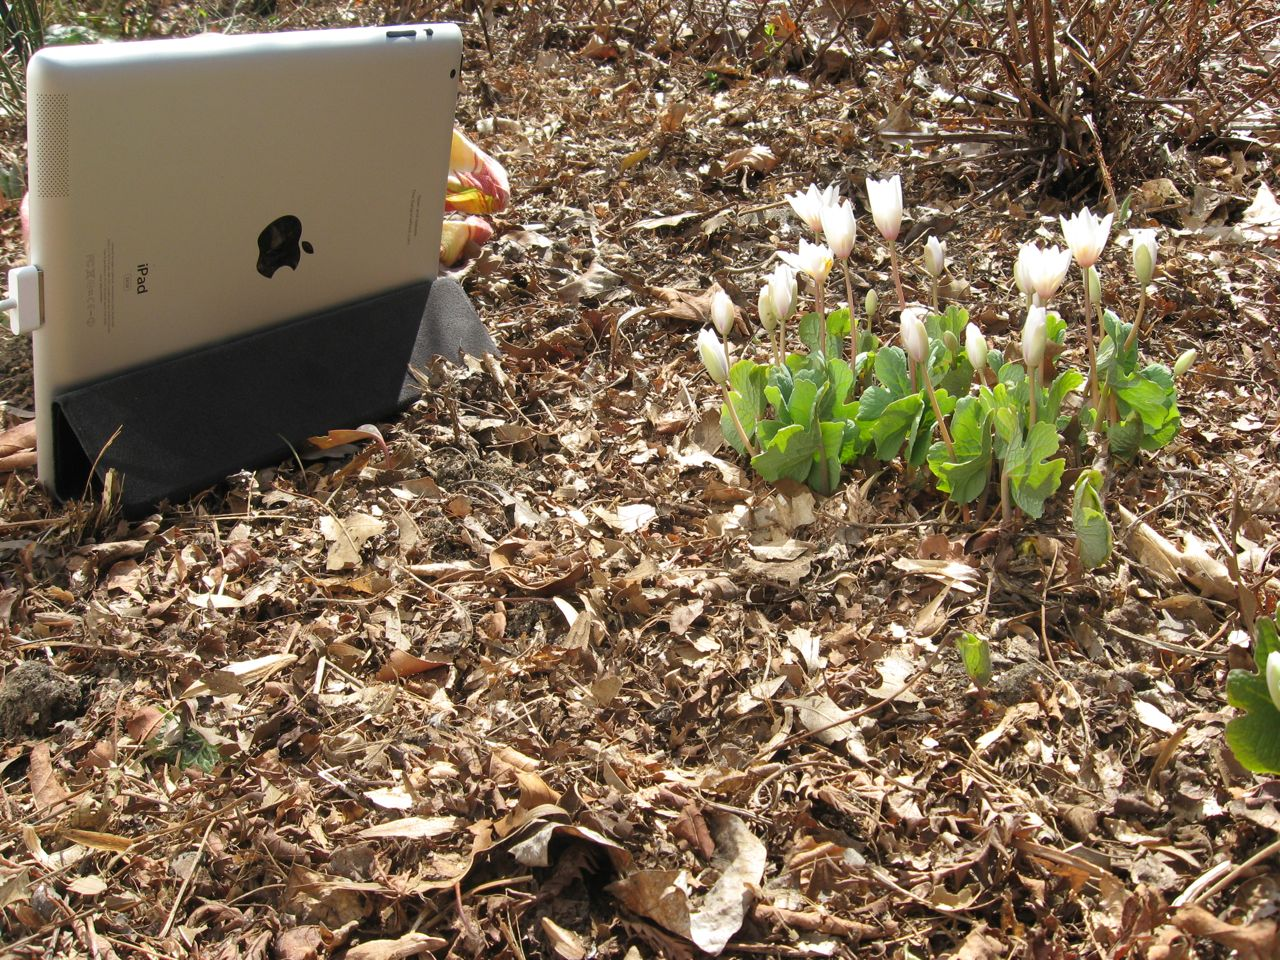 A SPRING GARDEN 2013 RETROSPECTIVE: BLOOMING FLOWERS AND TIME-LAPSE ...